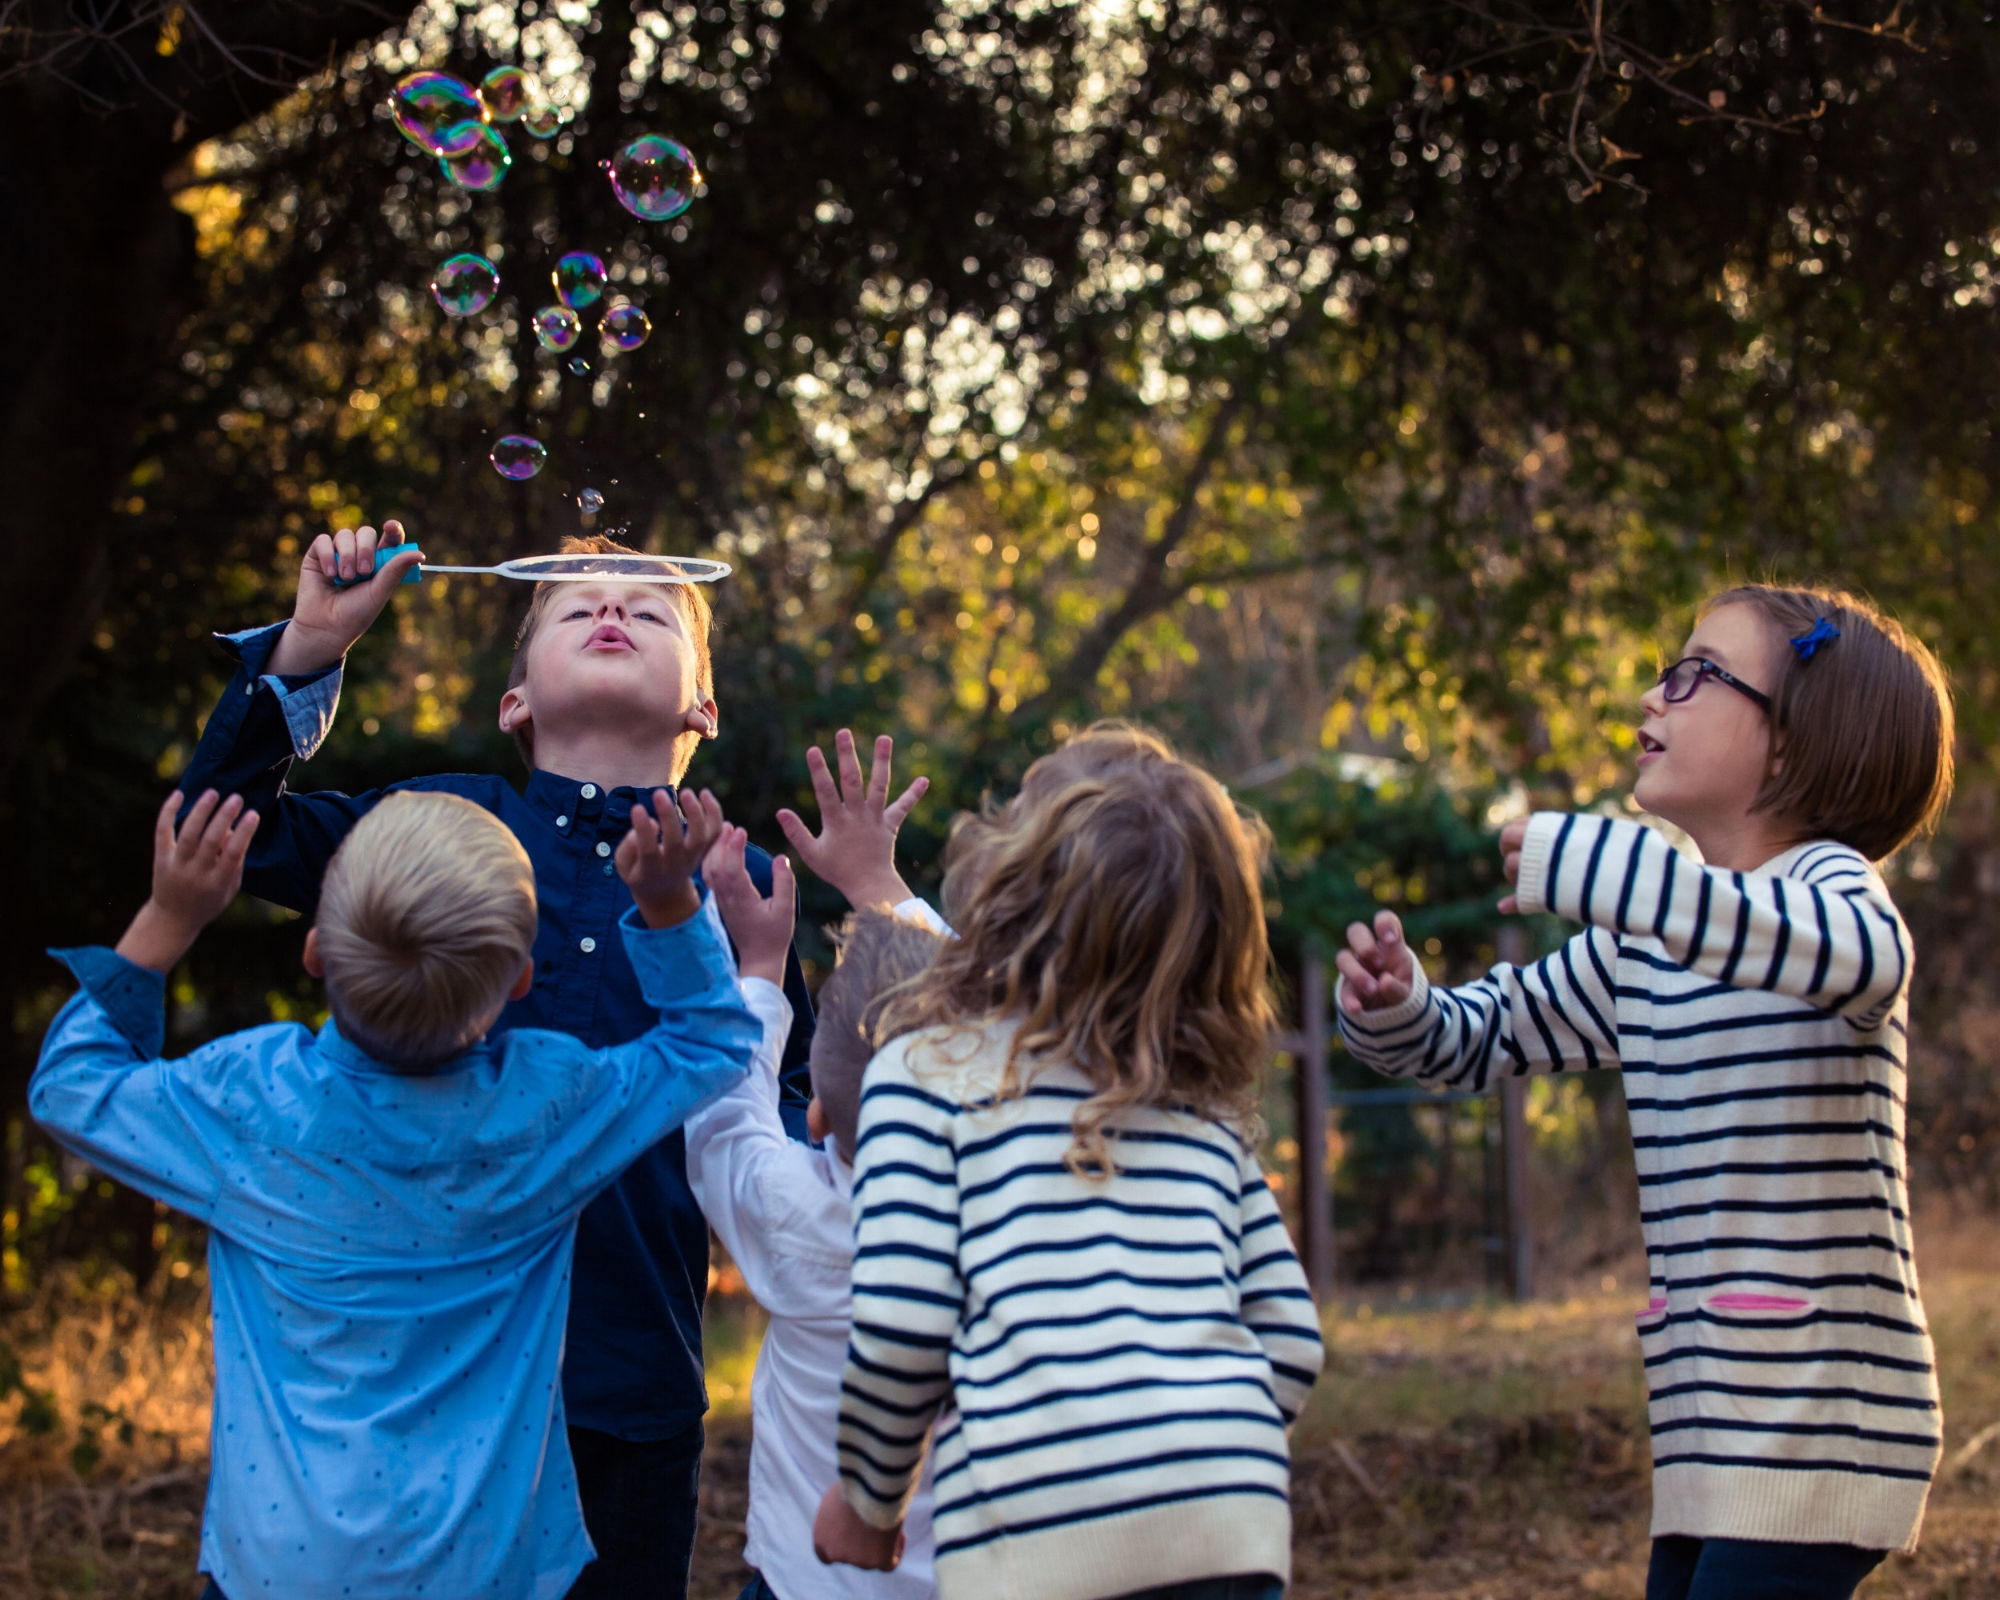 Red haired boy blowing bubble and children surrounding him trying to catch bubbles during a child photo shoot